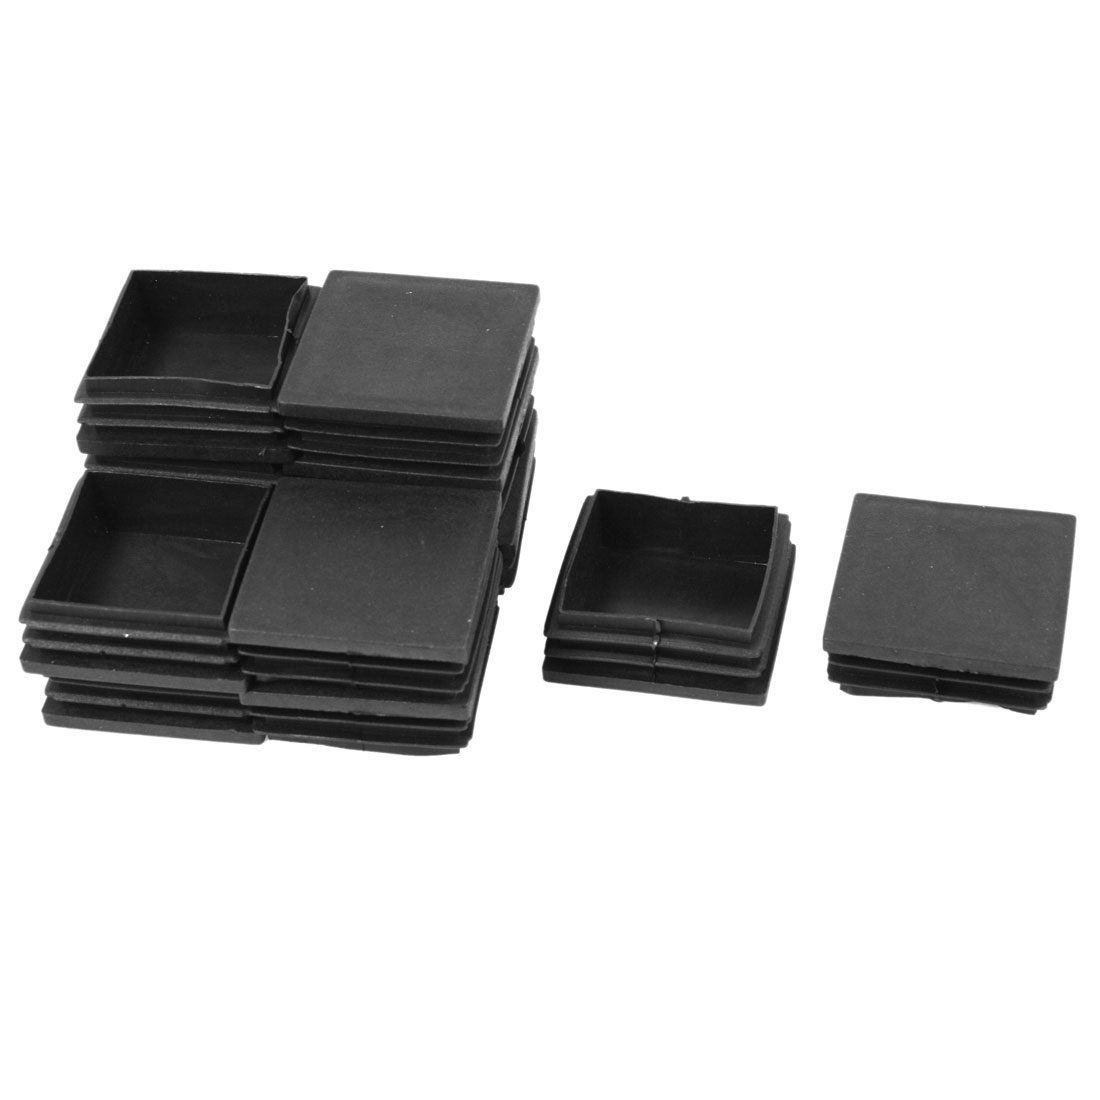 12 Pcs Black Plastic Square Blanking End Caps Tubing Tube Inserts 50mm x 50mm